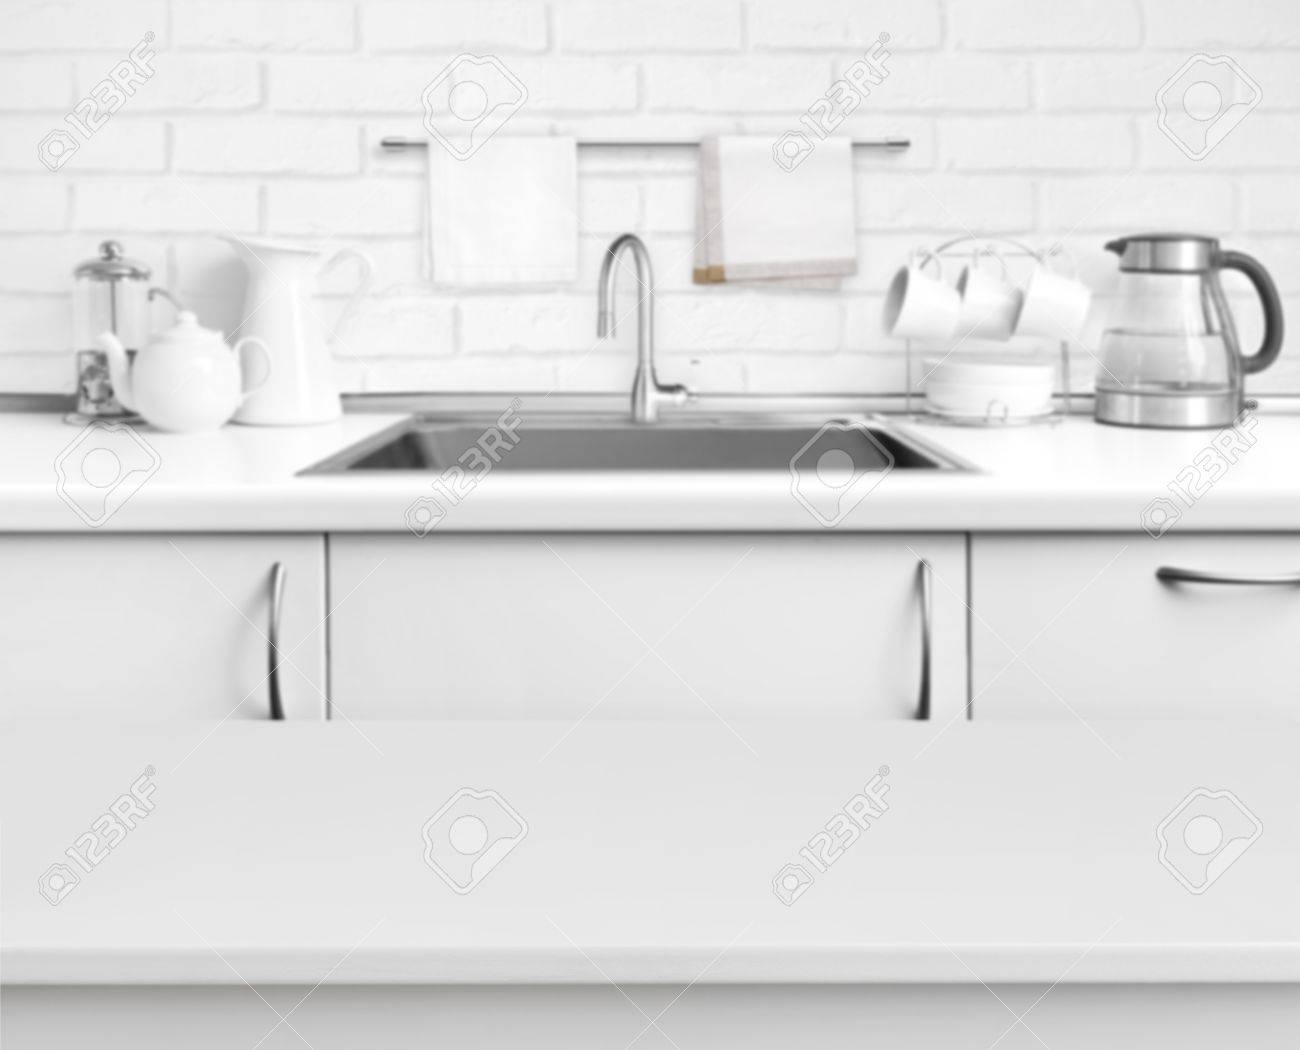 rustic kitchen sink swags and valances white laminated table on blurred interior stock photo background